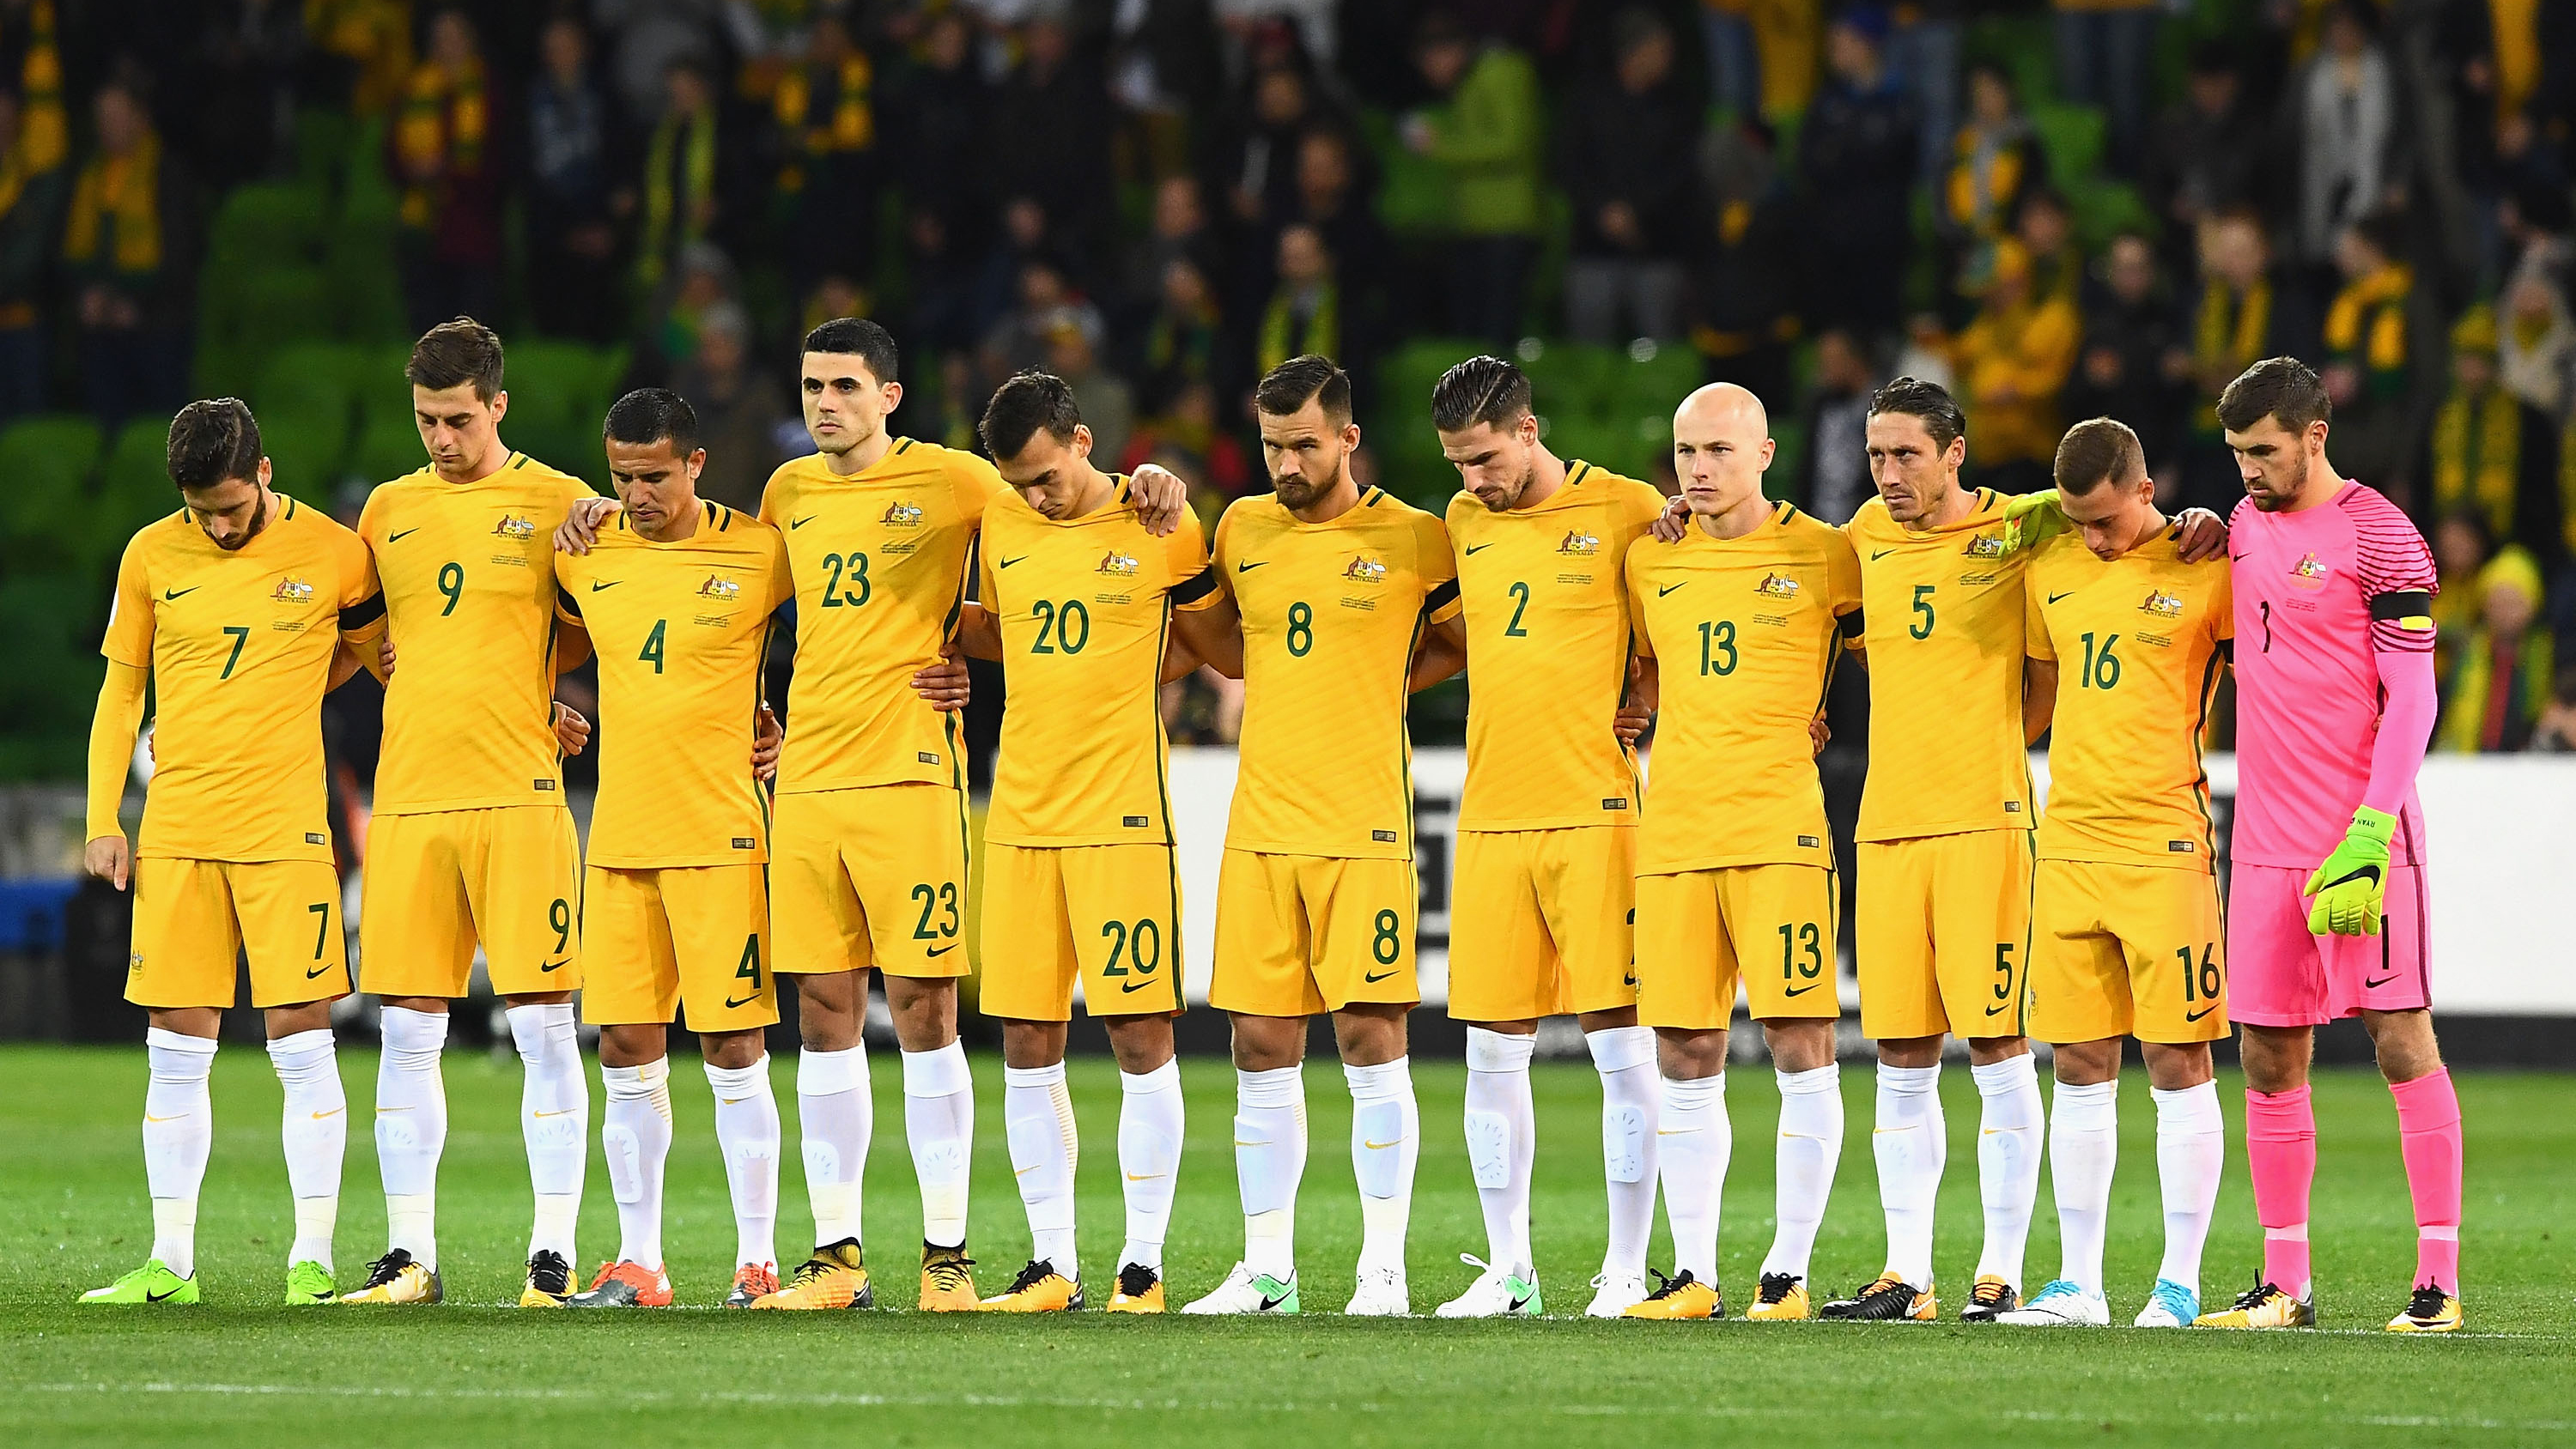 Socceroos to play Syria World Cup qualifier playoff in Malaysia